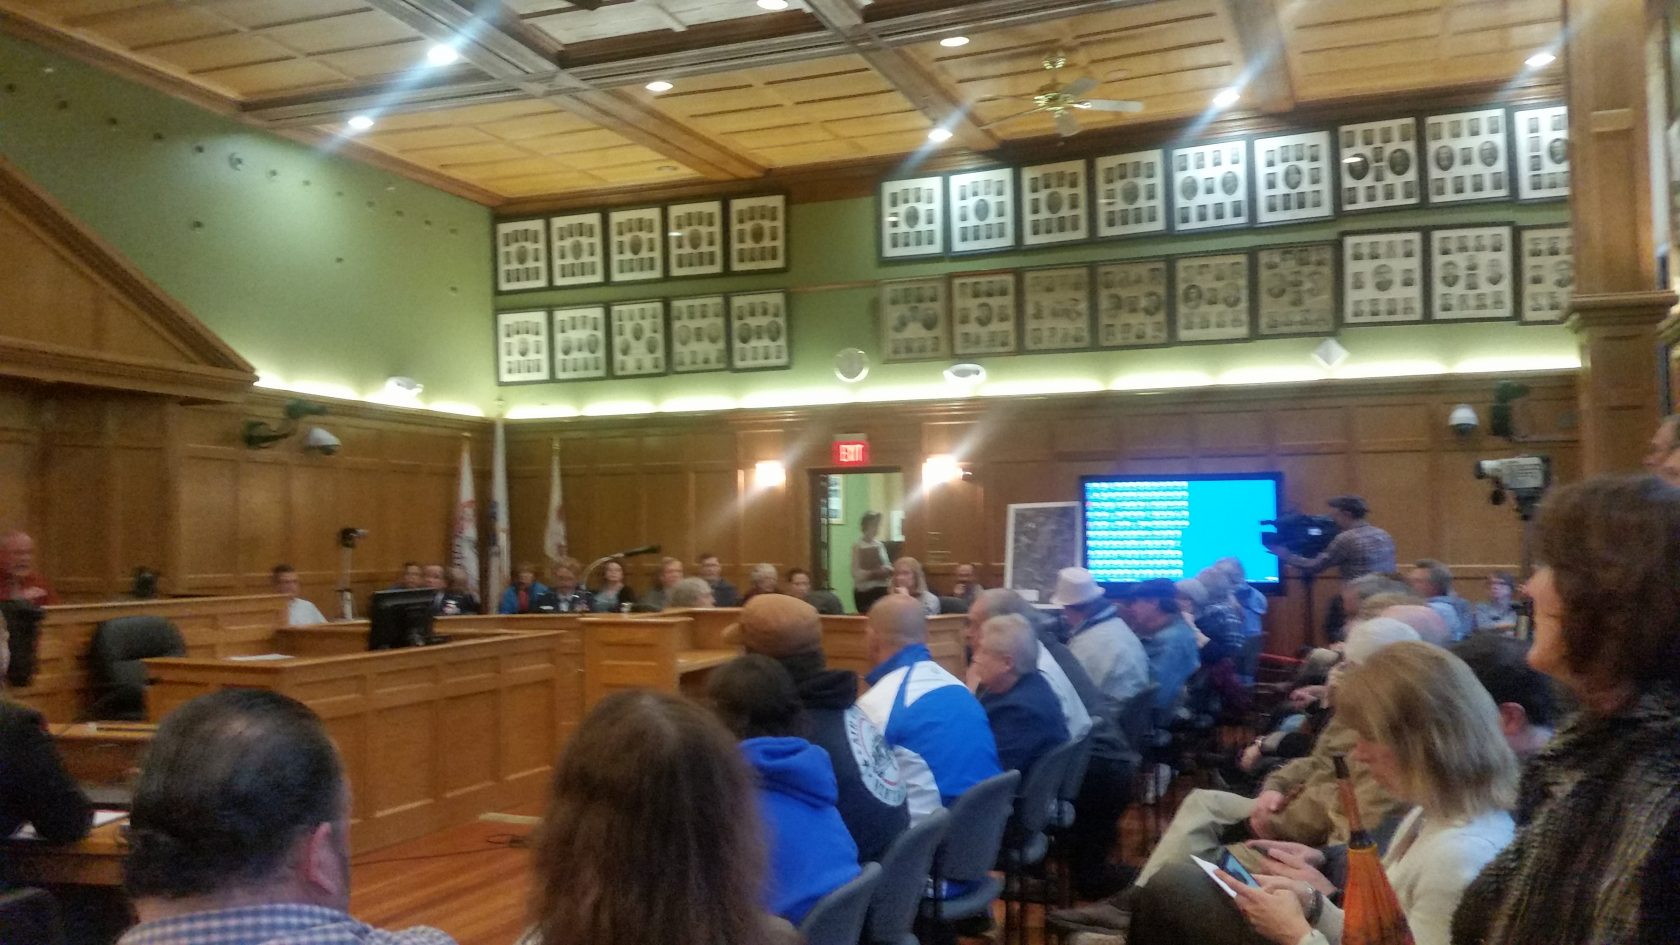 Residents informed of water issues at public forum